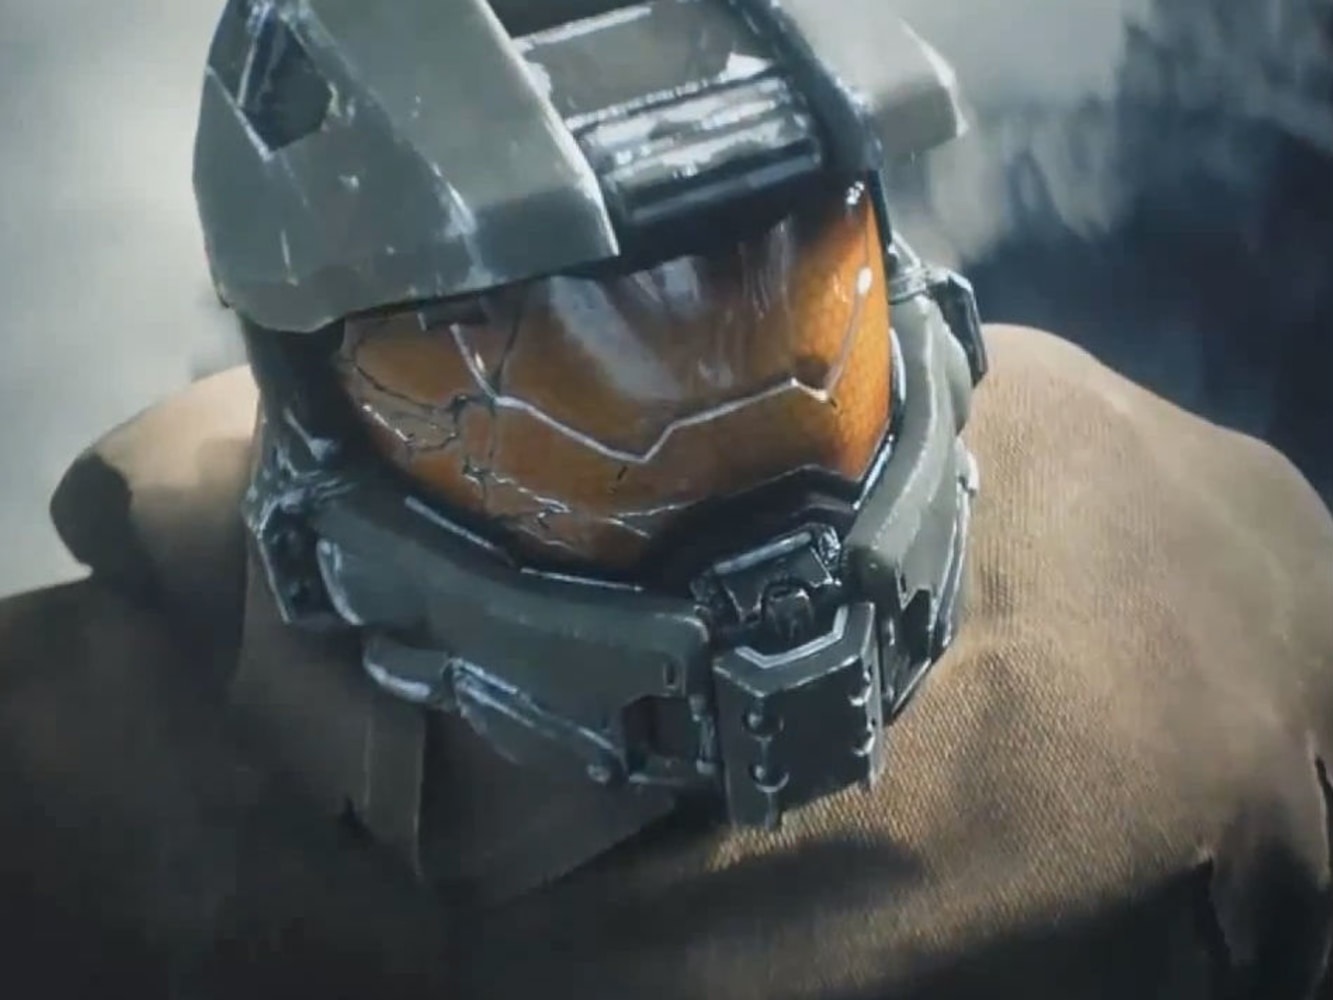 E3 2014: Halo 5 Multiplayer Beta Begins this Holiday Season